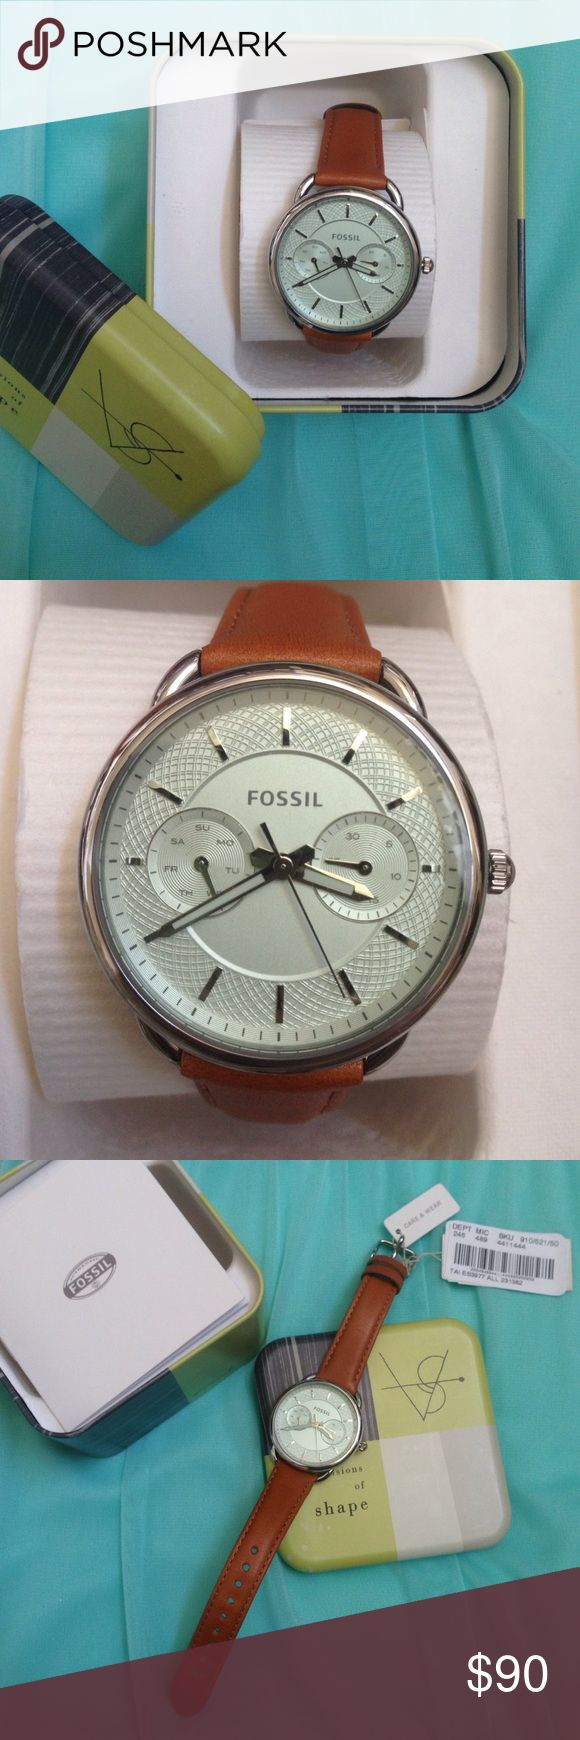 Fossil Watch Brand New Fossil Watch! Genuine Leather band, new battery, etc. the background has a pale mint hue which is my favorite part of this watch! Found another one, but it's too late for me to return this one. Fossil Accessories Watches